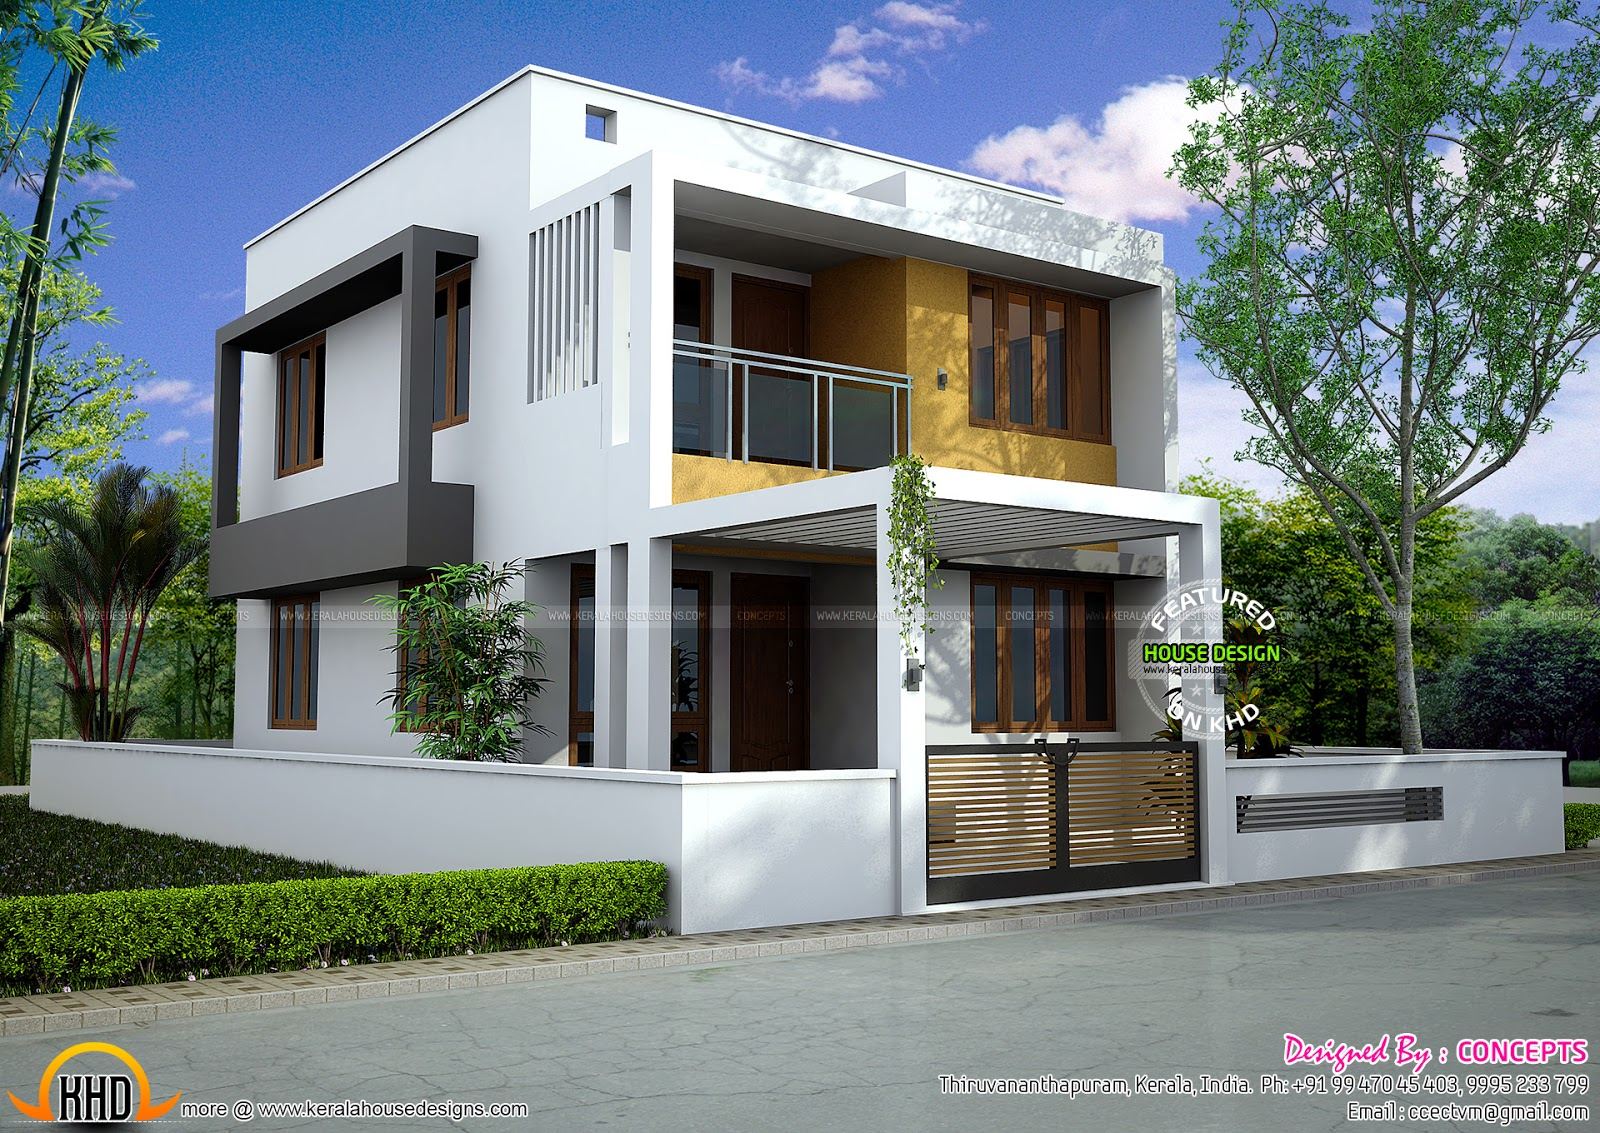 Floor plan of modern 3 bedroom house home design simple for Modern 3 bedroom house